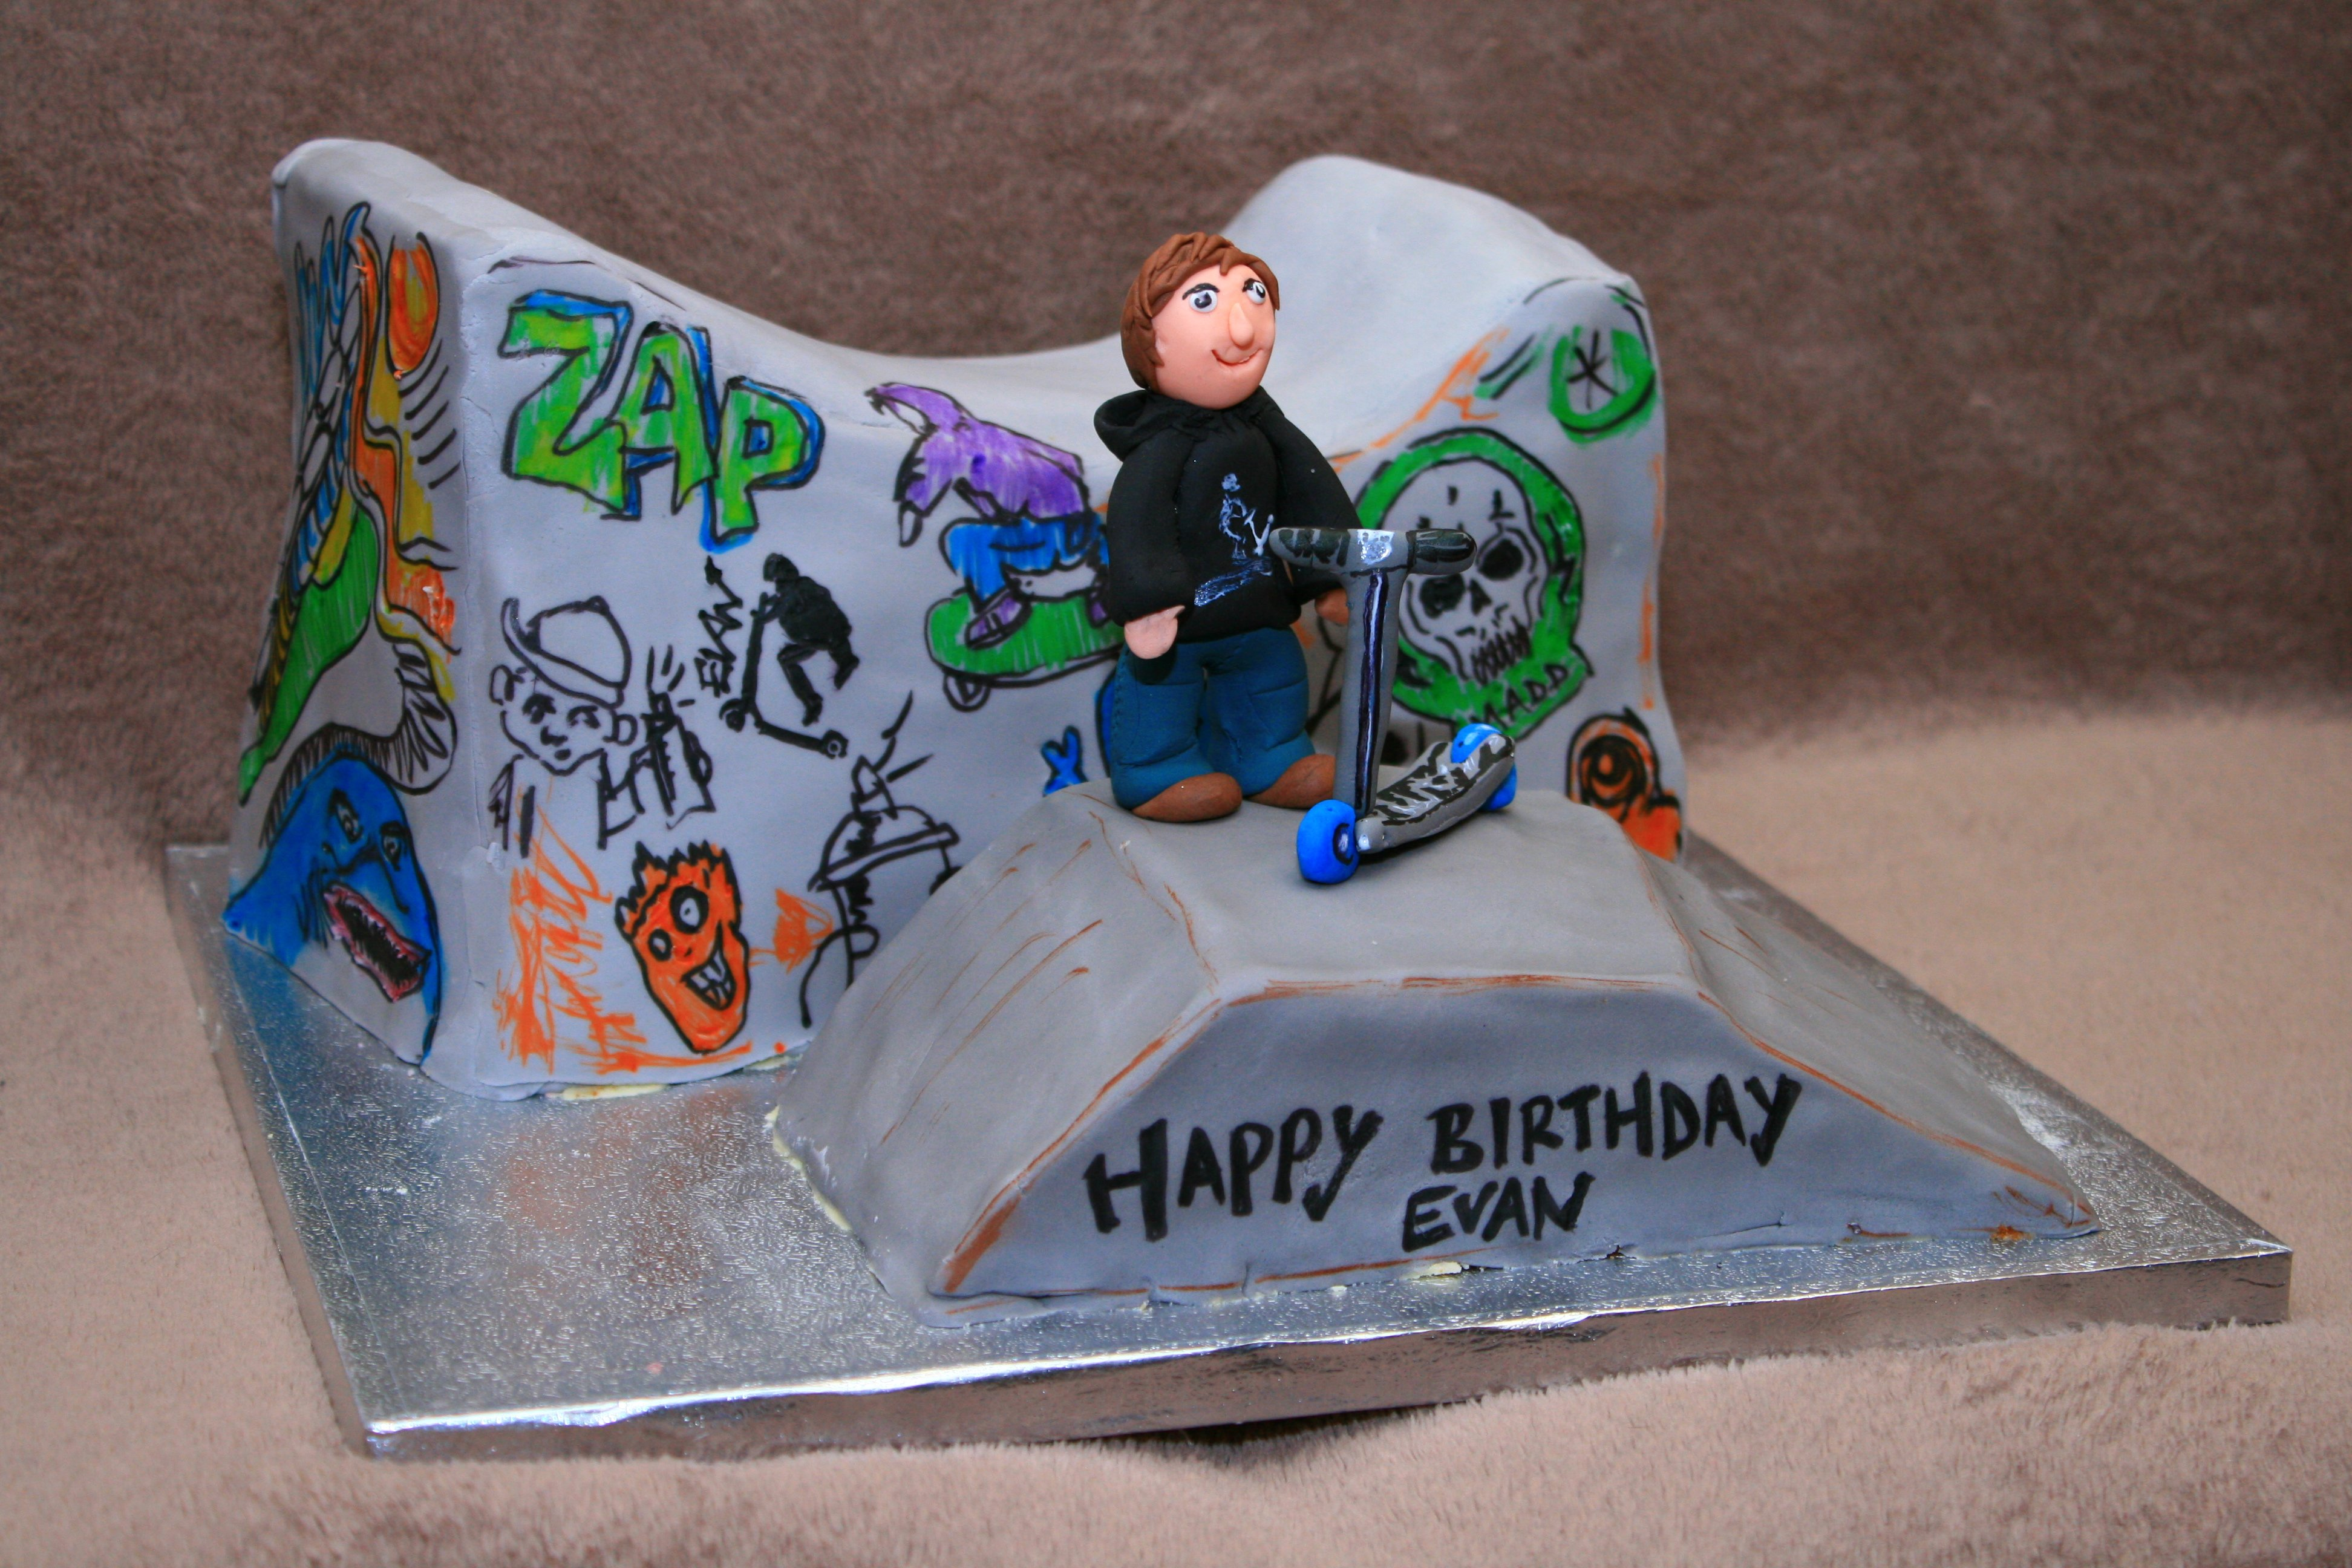 Scooter Cake With Happy Birthday Dawn On It